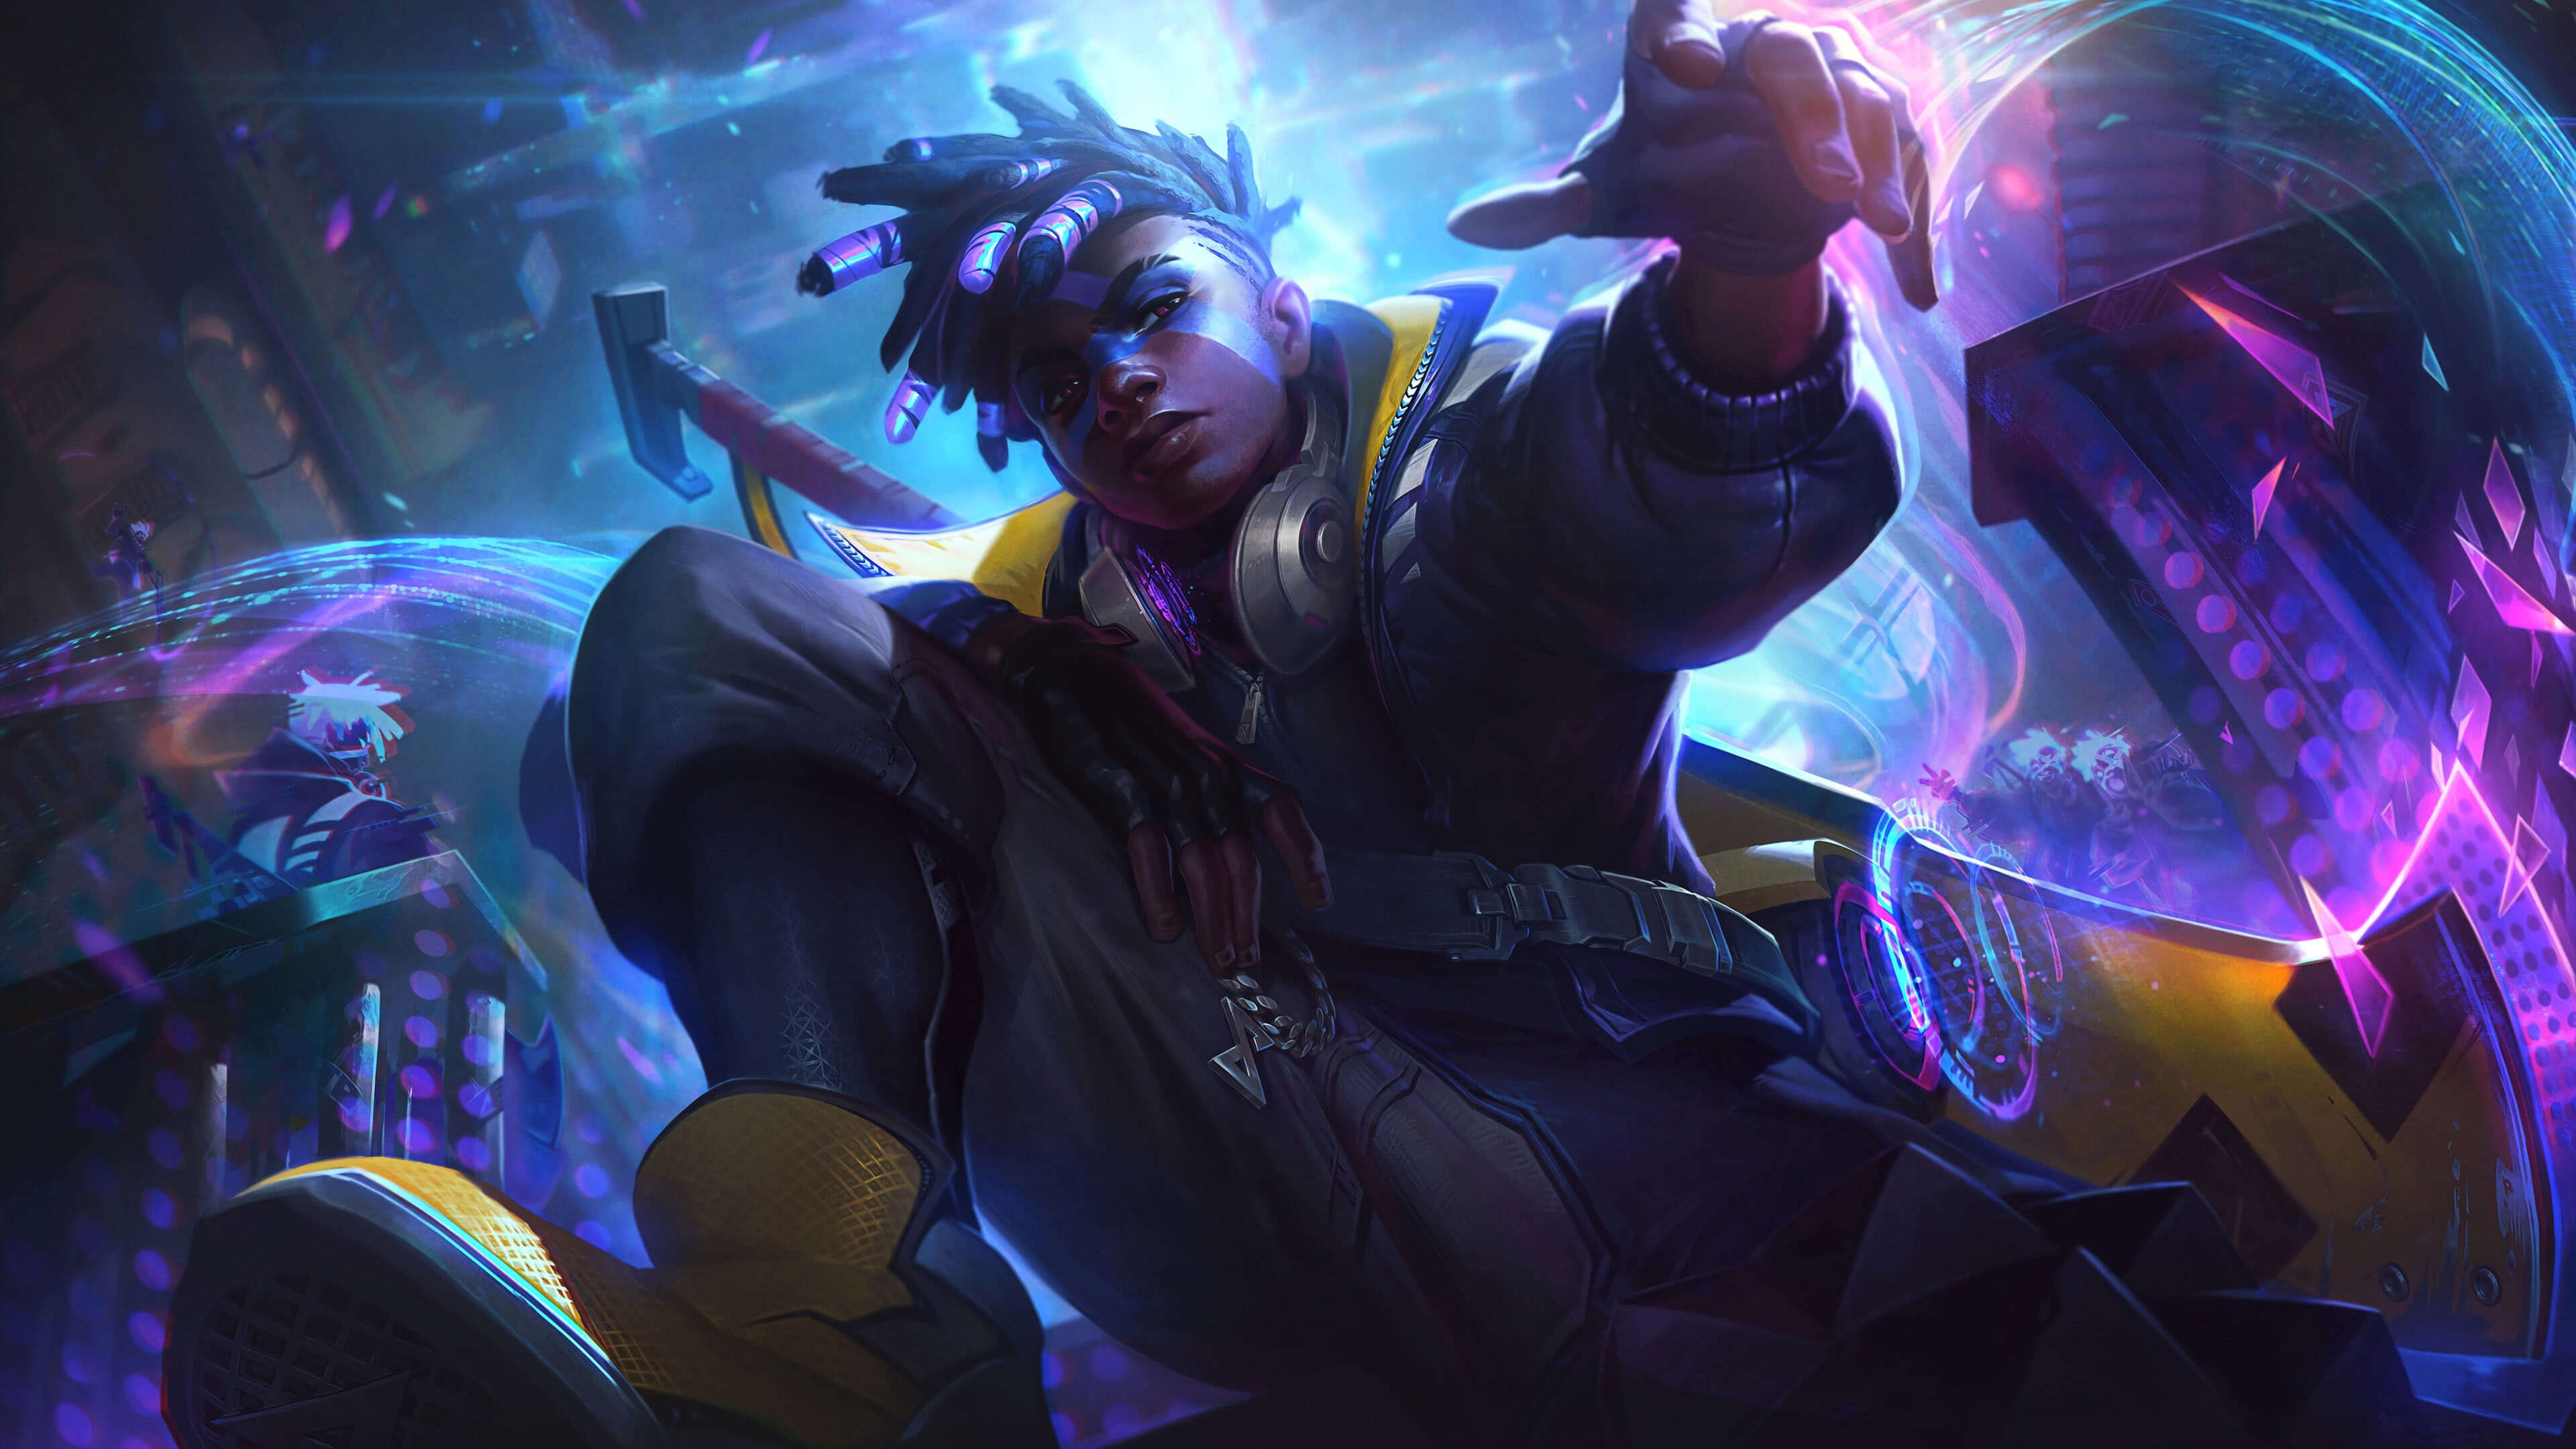 League Of Legends True Damage Ekko Uhd 4k Wallpaper Pixelz